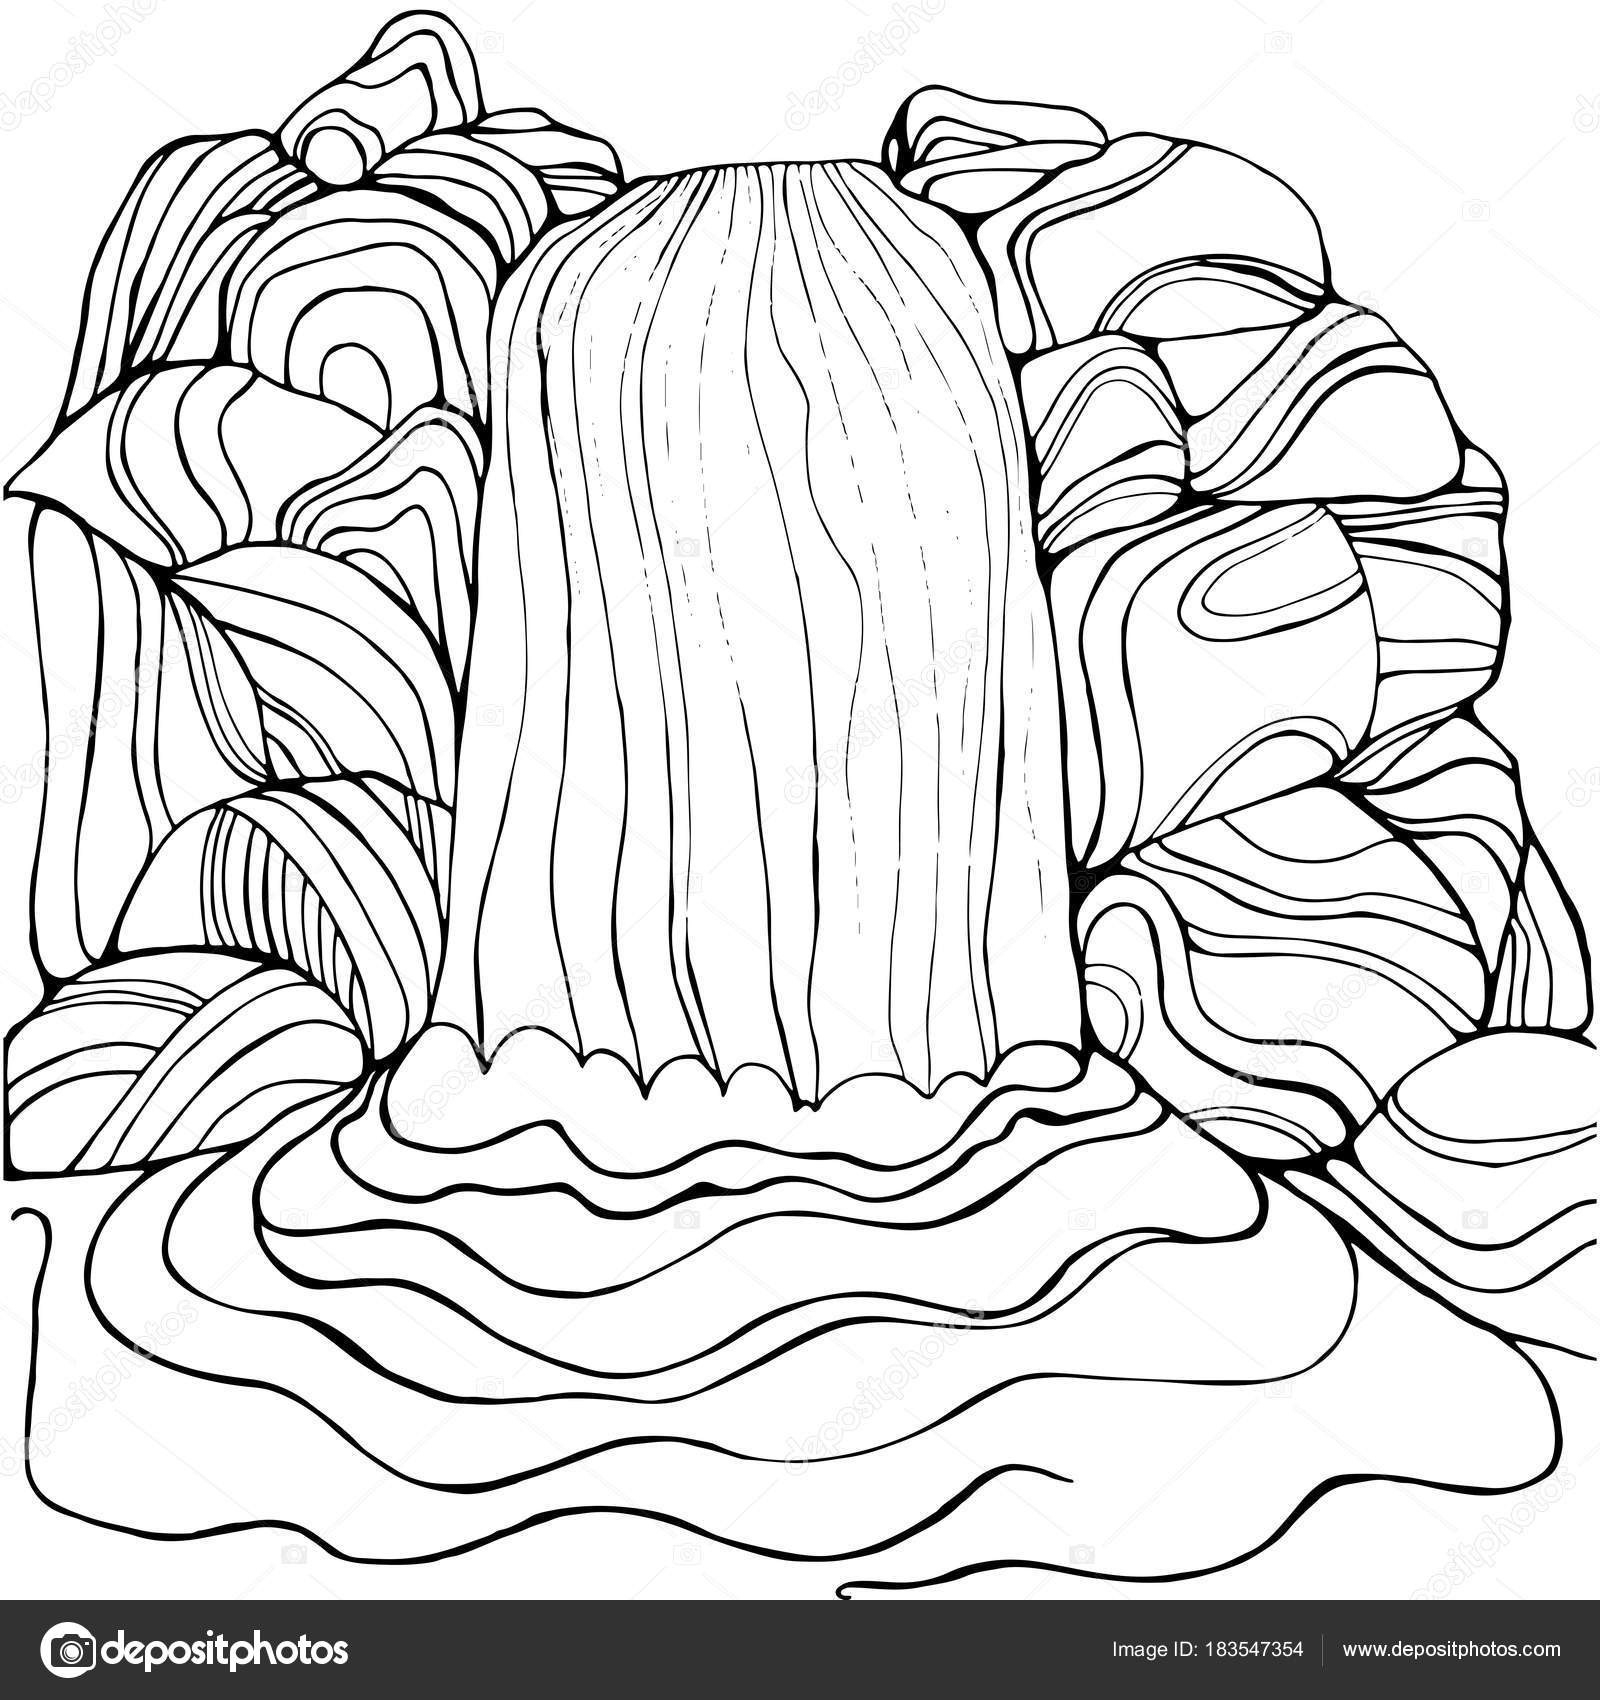 Waterfall Coloring Page For Children And Adults Stock Vector Tearing - Free Printable Waterfall Coloring Pages